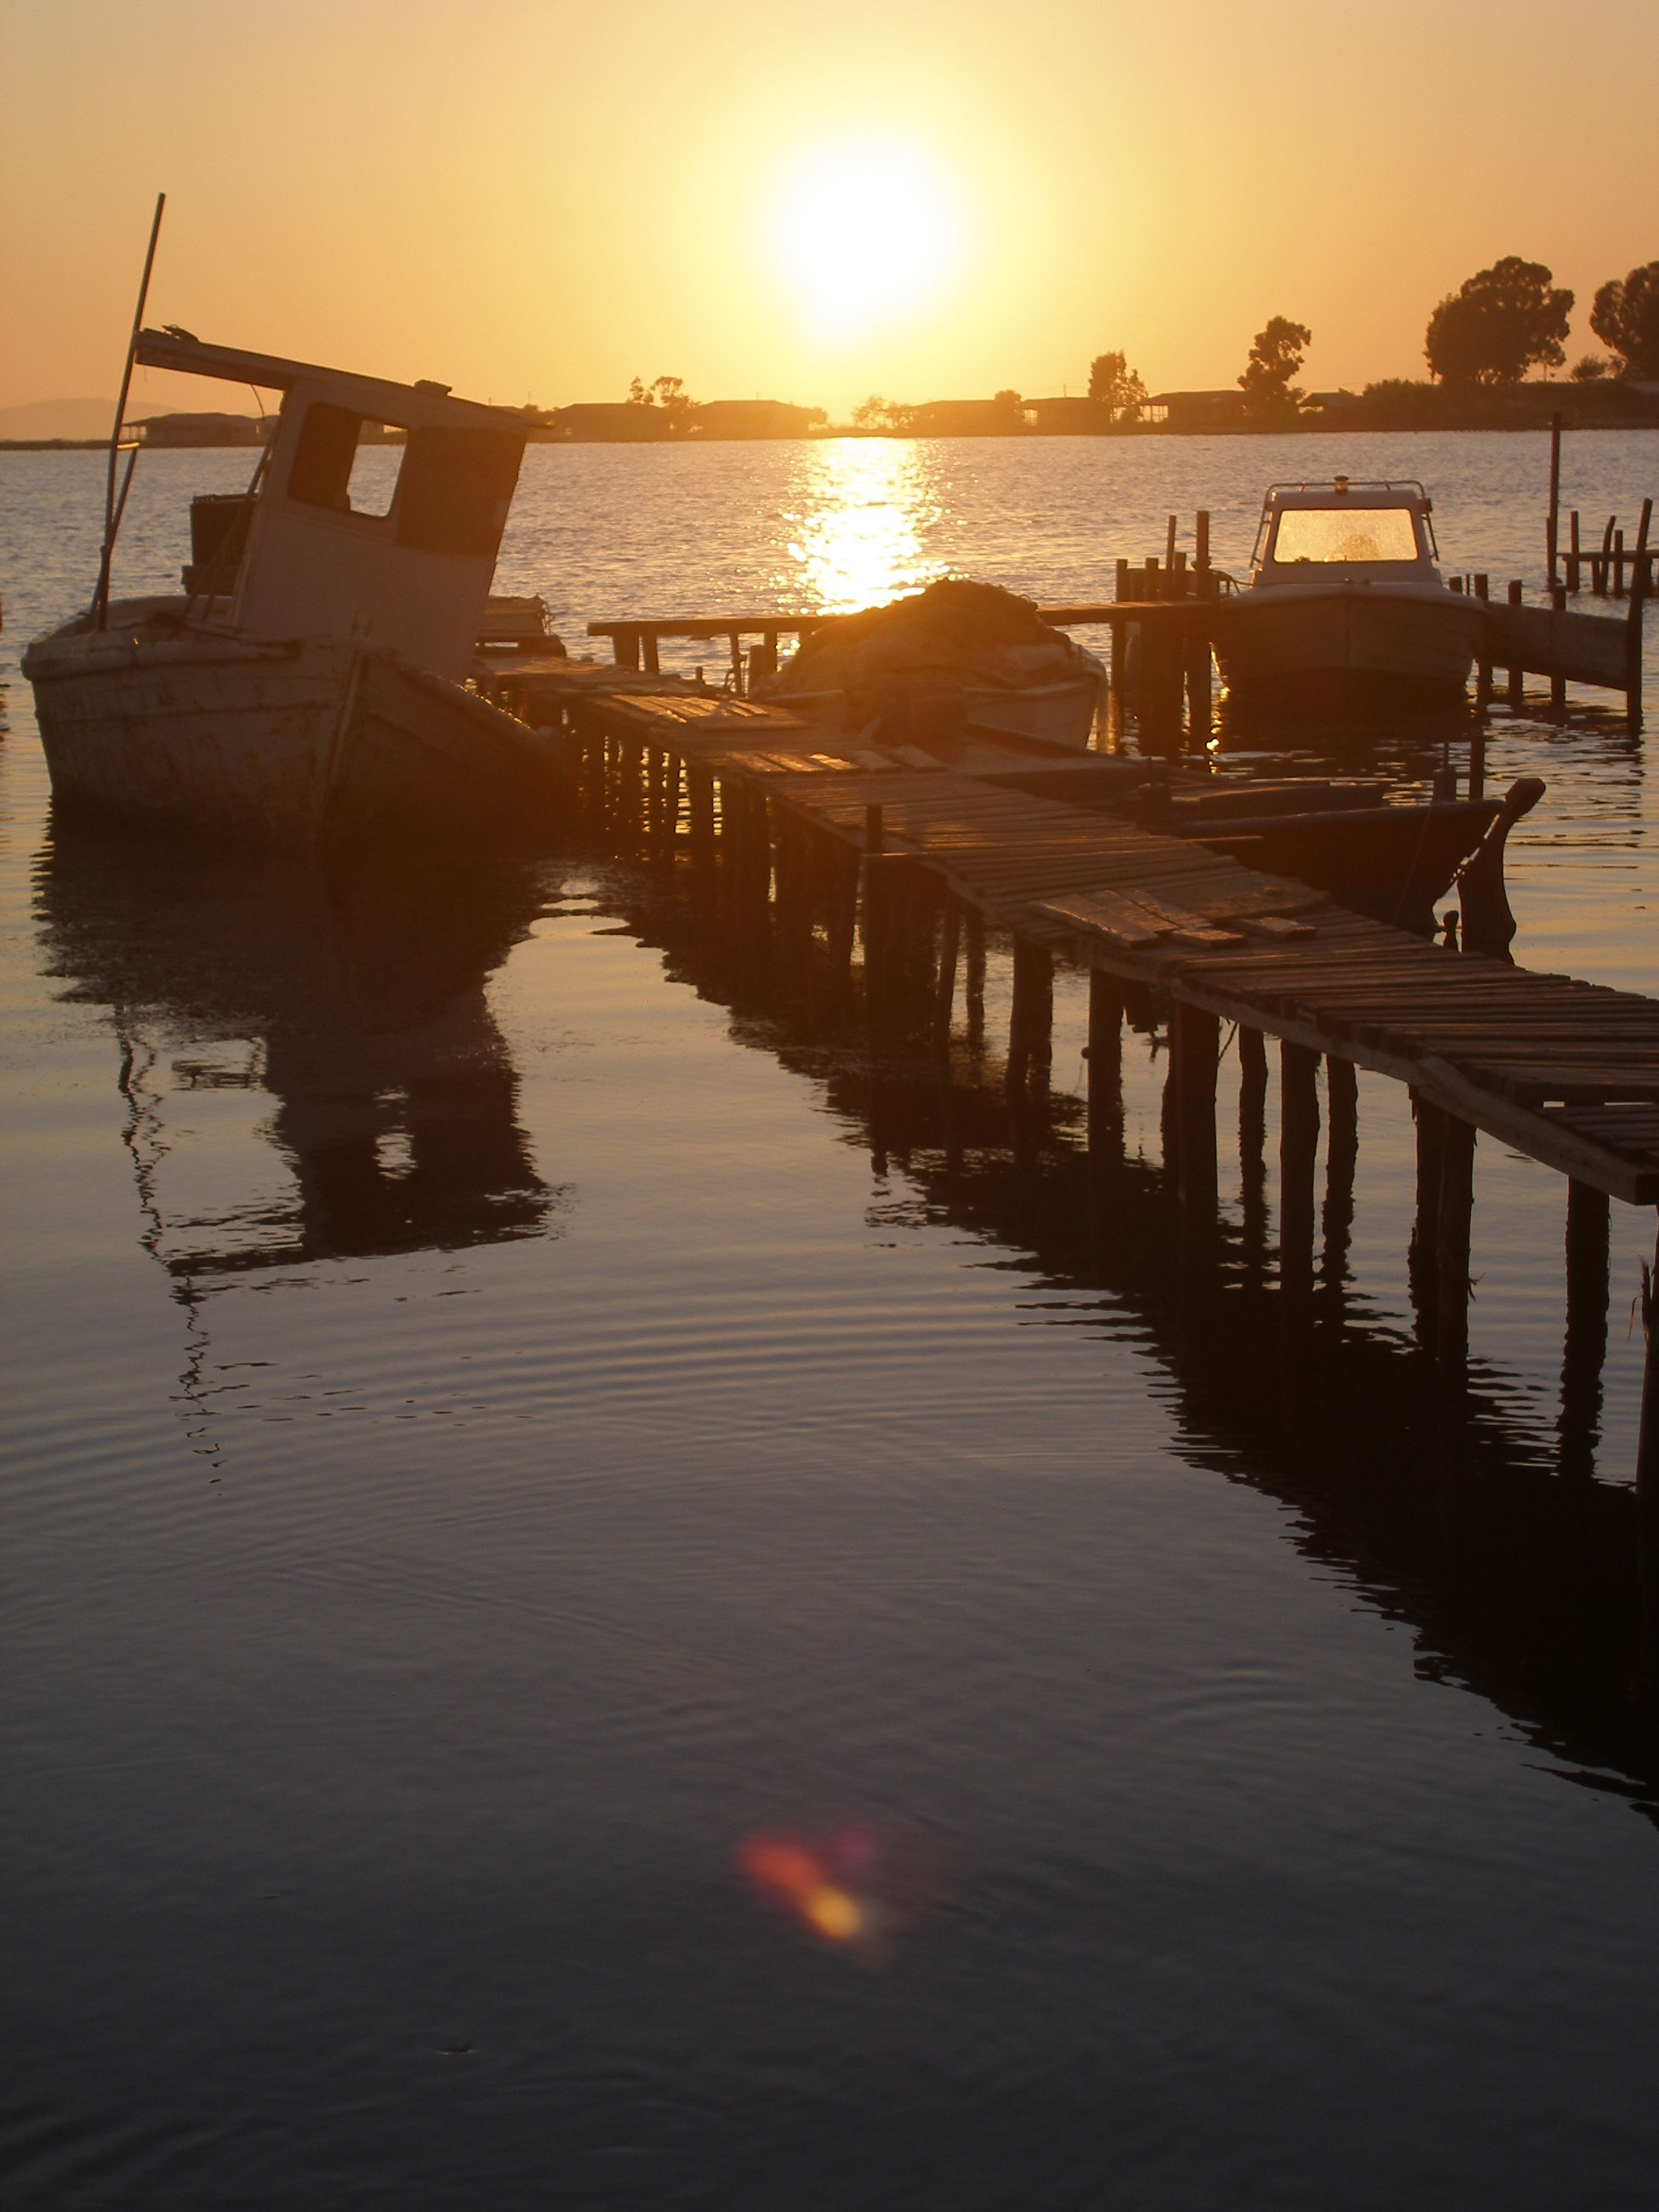 water, sunset, sea, sun, reflection, pier, orange color, silhouette, tranquil scene, tranquility, sunlight, horizon over water, scenics, sky, built structure, beauty in nature, waterfront, nature, rippled, idyllic